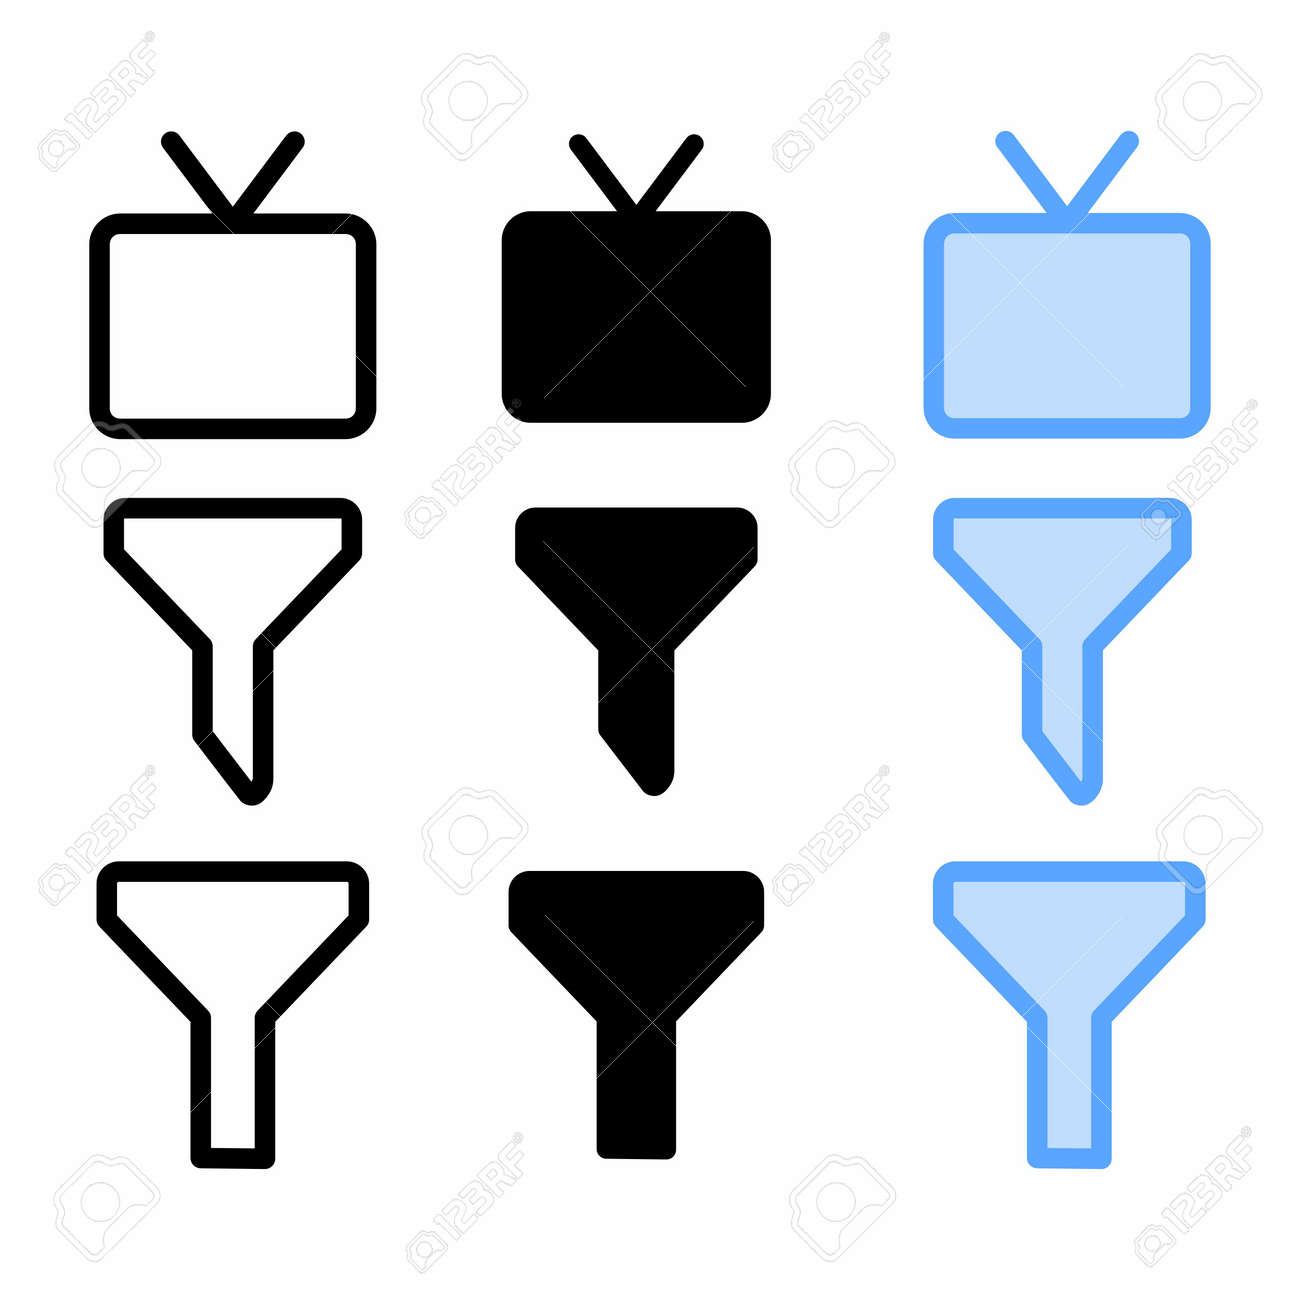 television icon with three style for website and user interface - 169314854